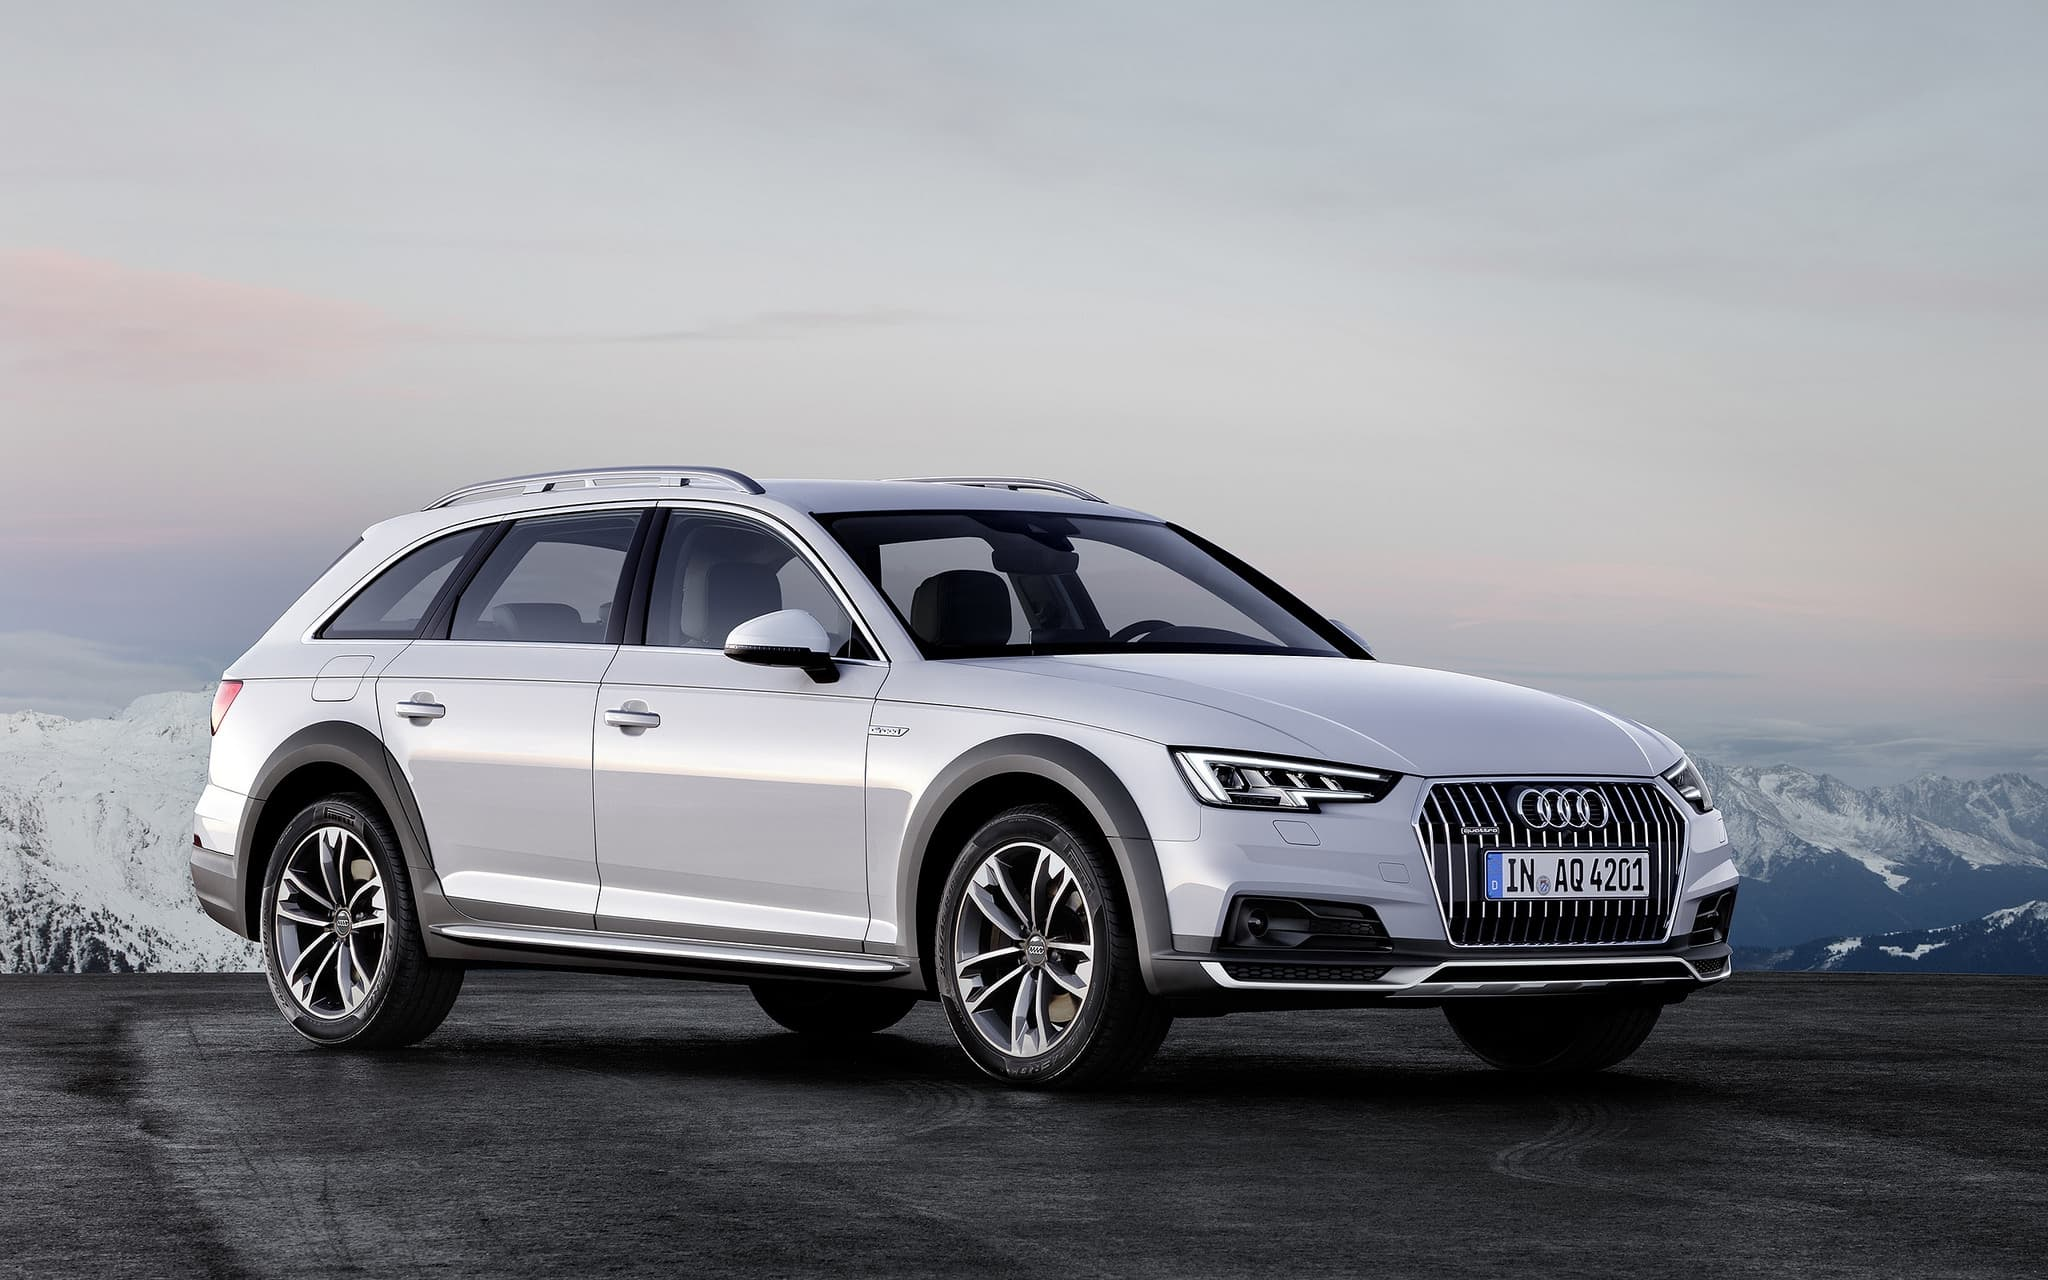 2016 Audi A4 Allroad Wallpapers High Quality Download